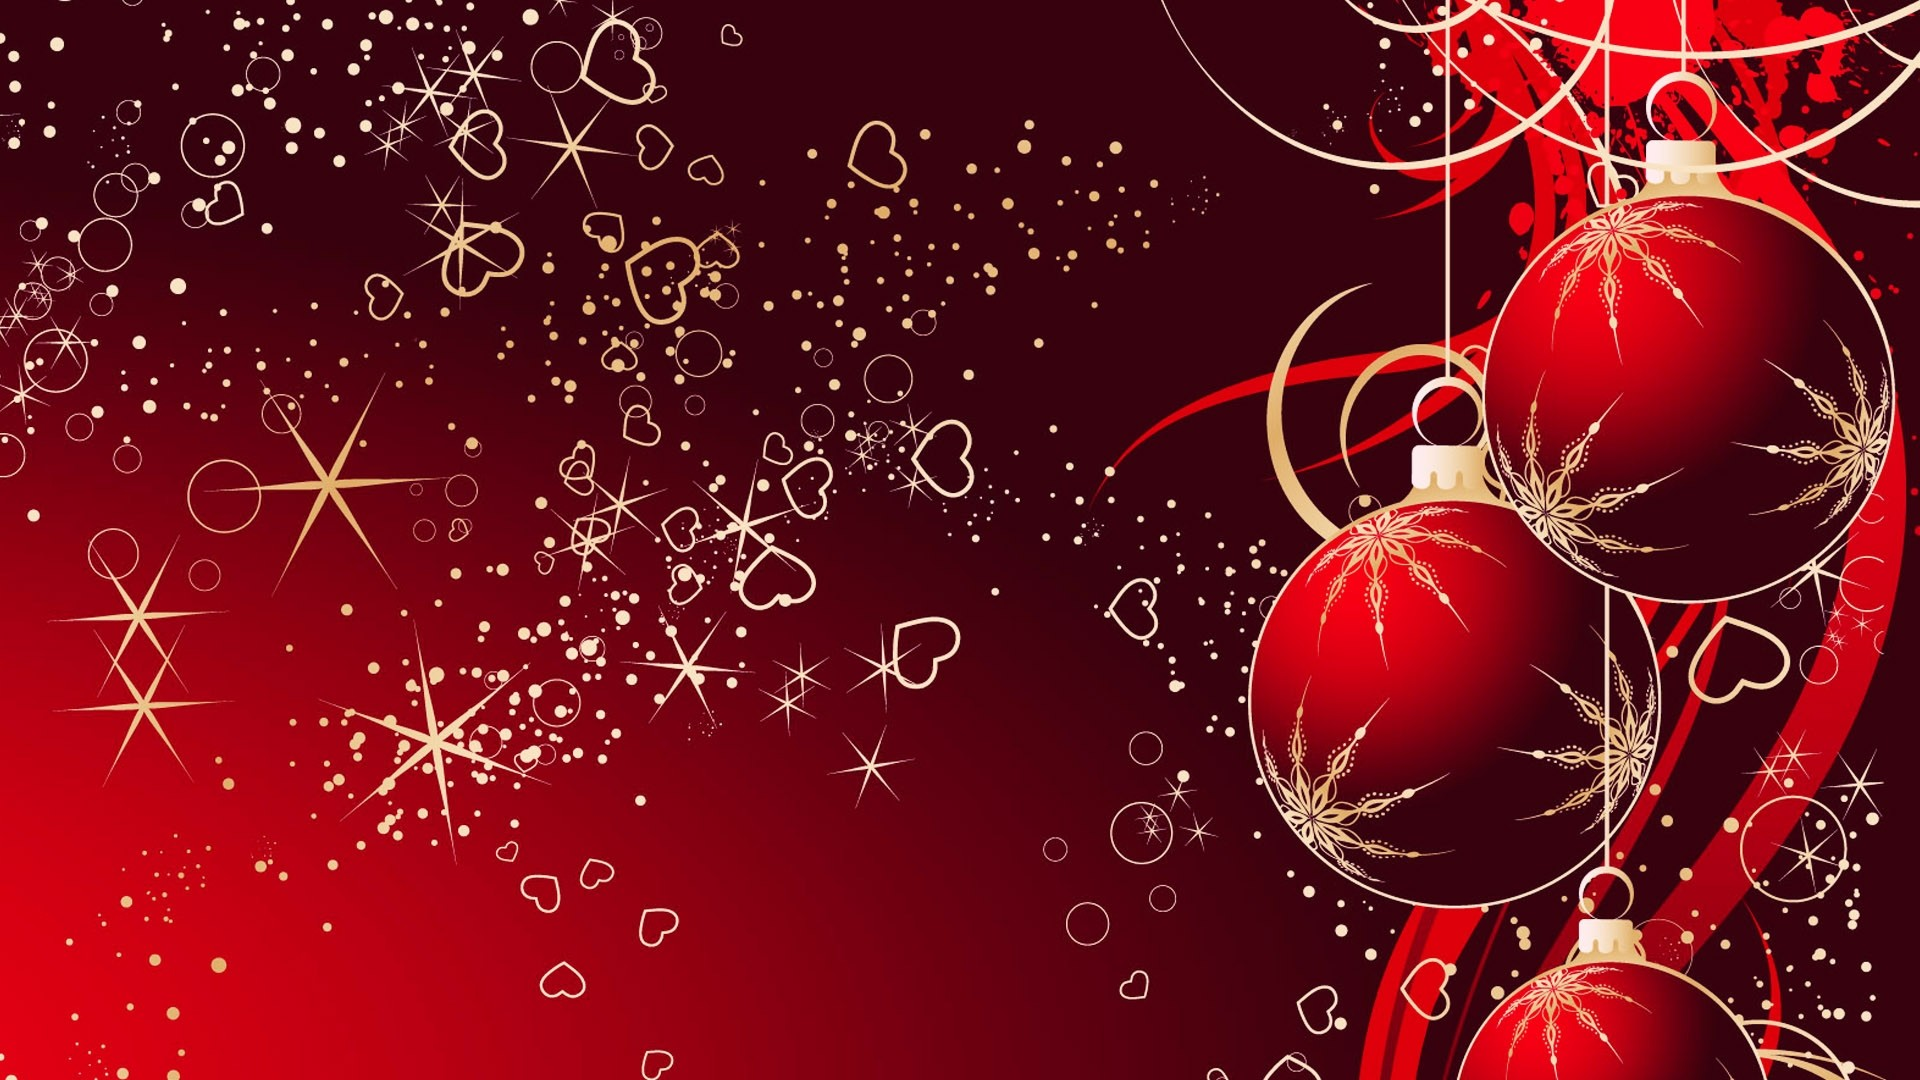 1920x1080 Nice Christmas Backgrounds (27 Wallpapers)